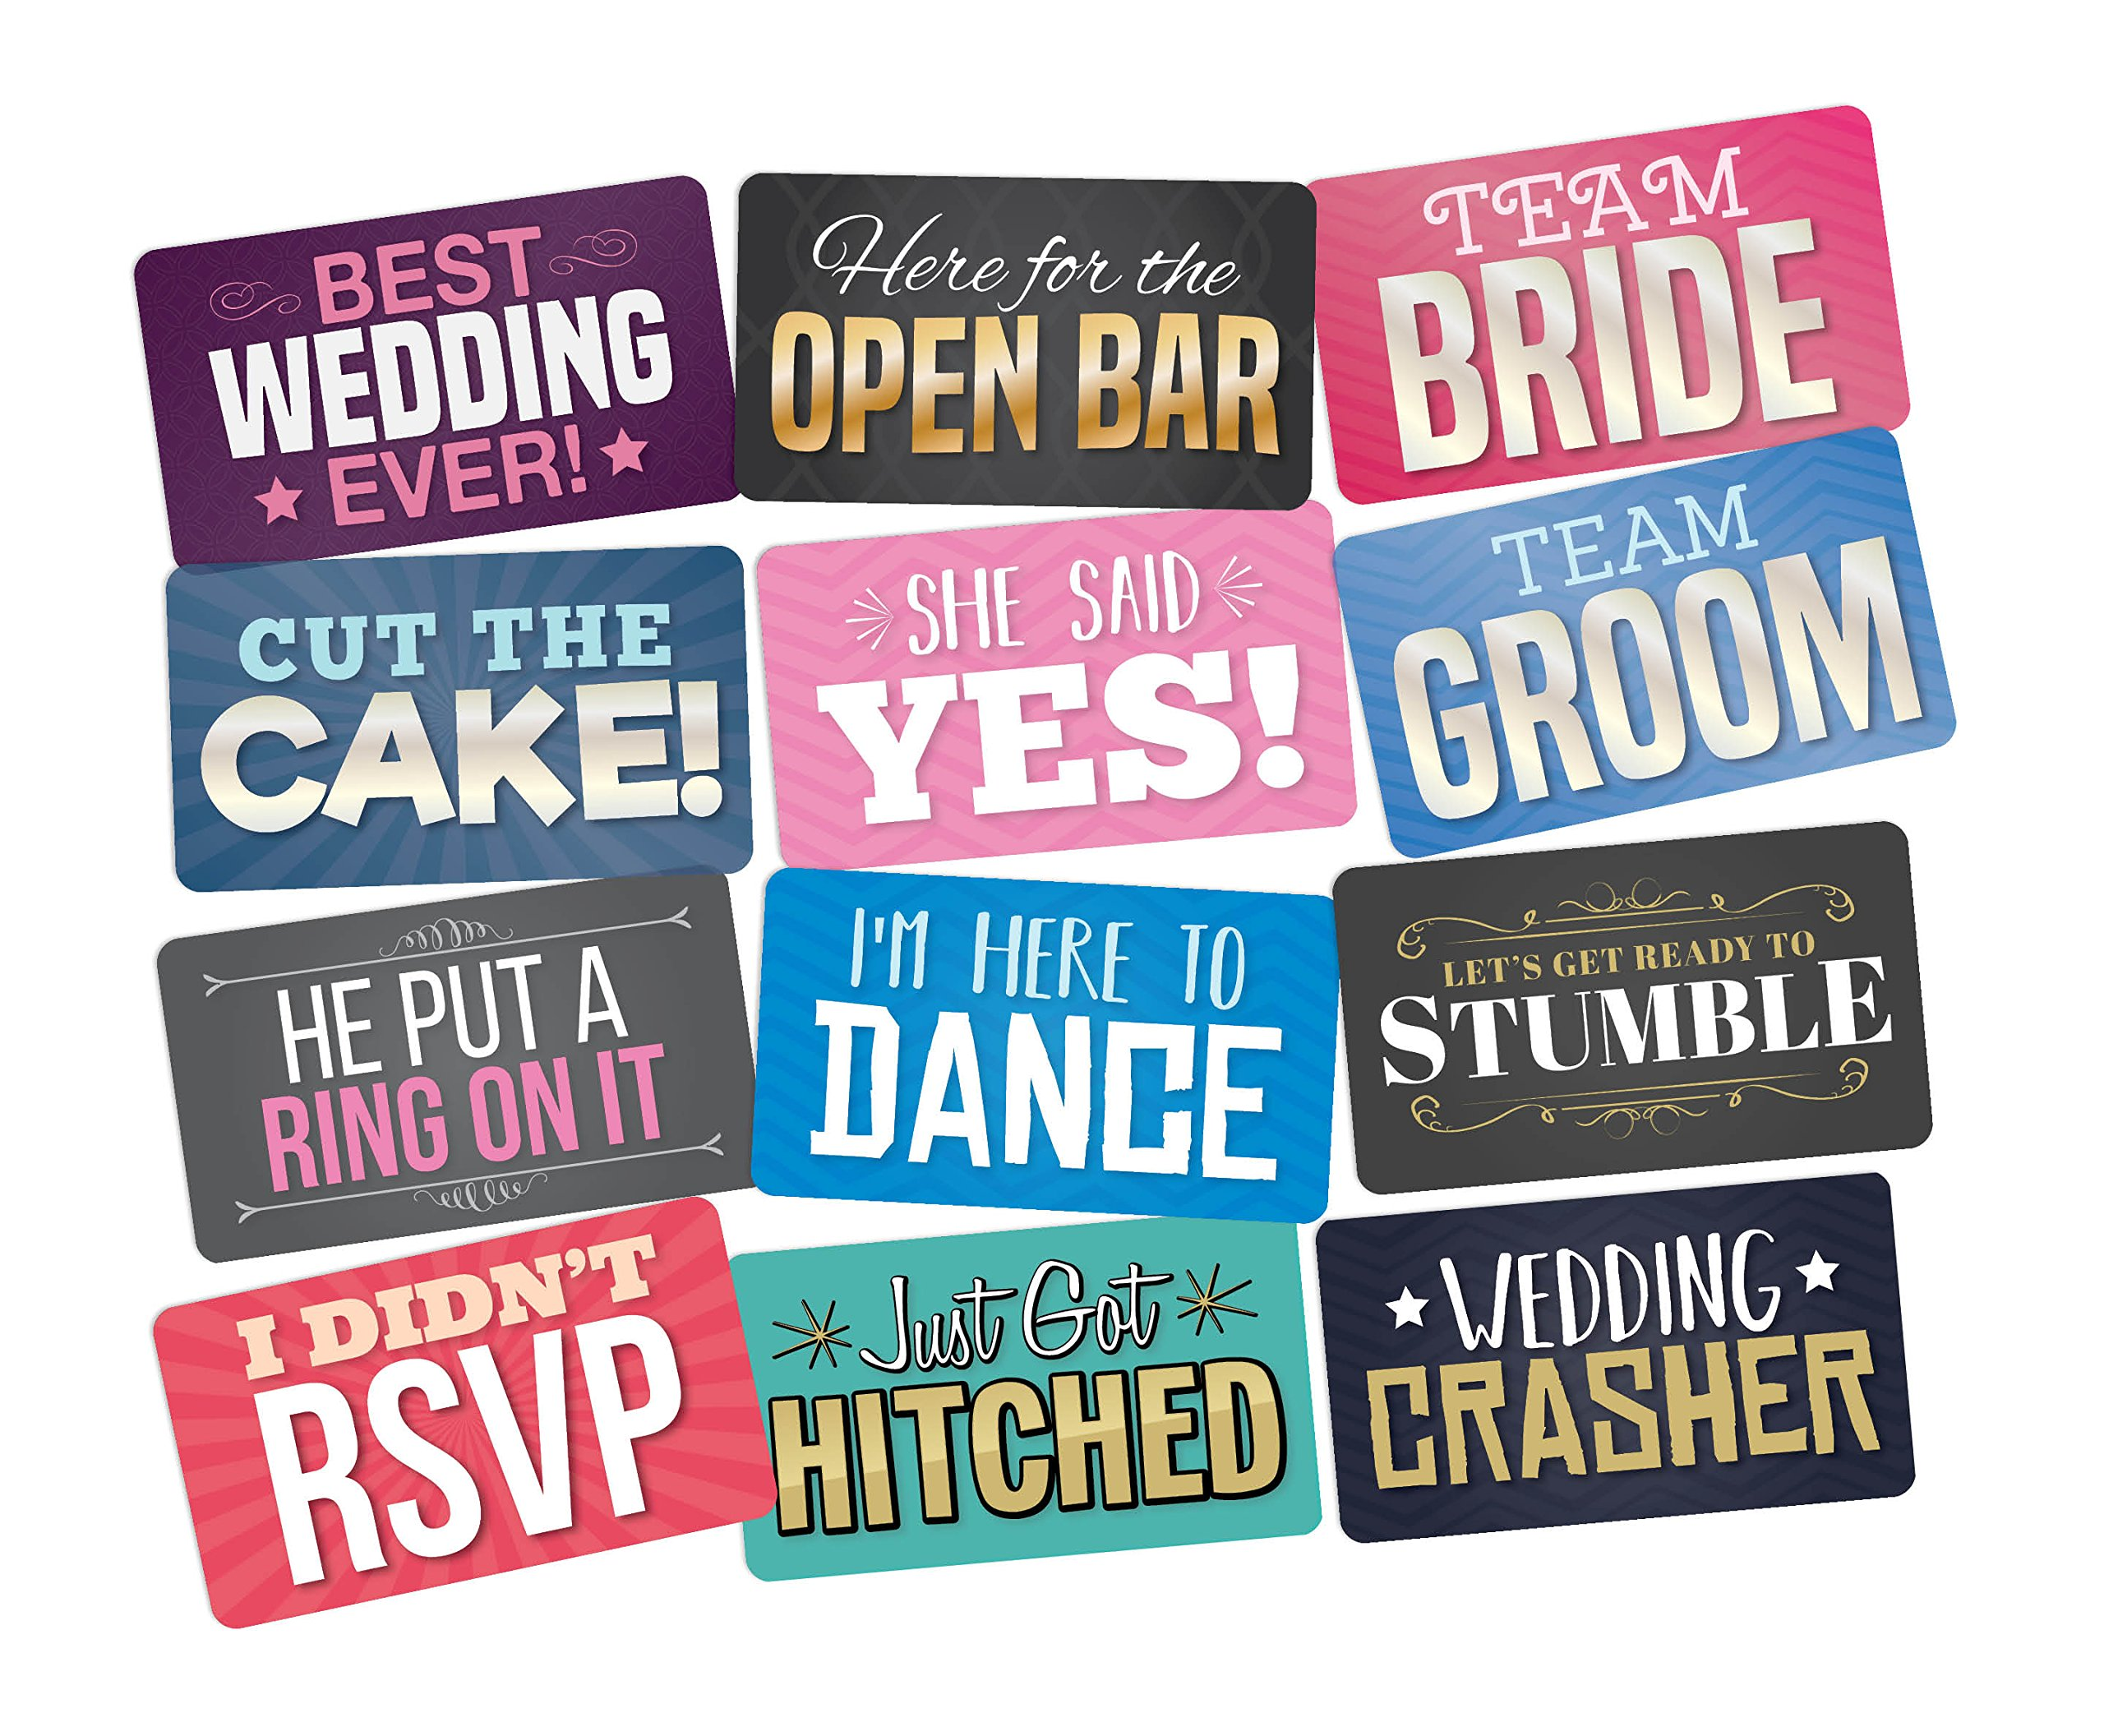 PHOTO BOOTH PROPS PACK OF 6, Perfect For Wedding DIY Photo Booth Great Addition To Any Photo Booth Rental. Fun Wedding Photo Booth Props Your Guests Will Love!